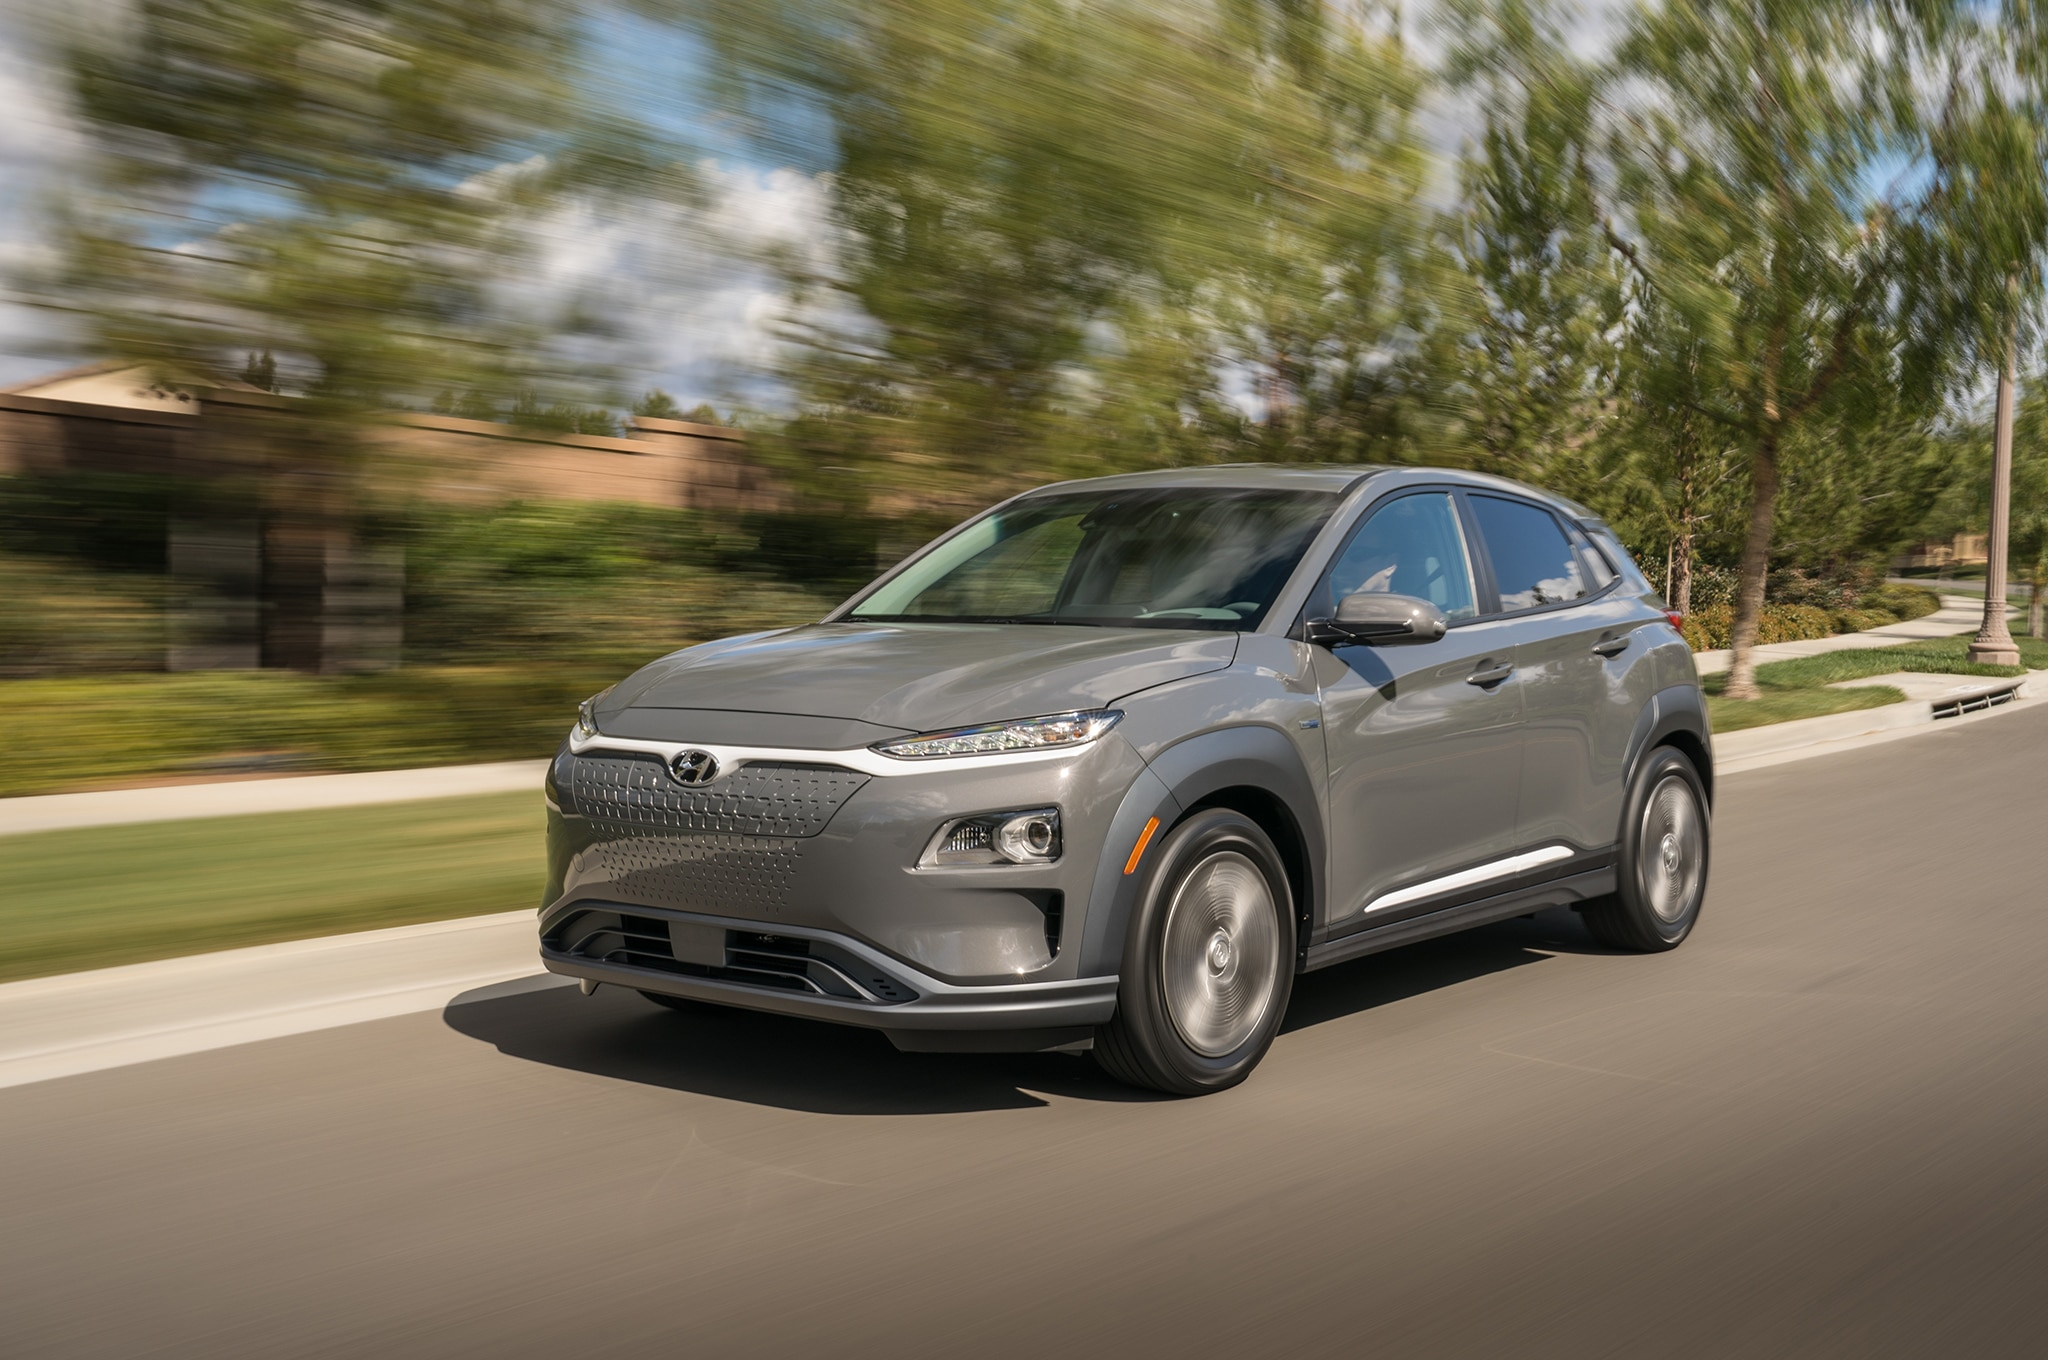 2019 Hyundai Kona Electric Front Three Quarter In Motion 04